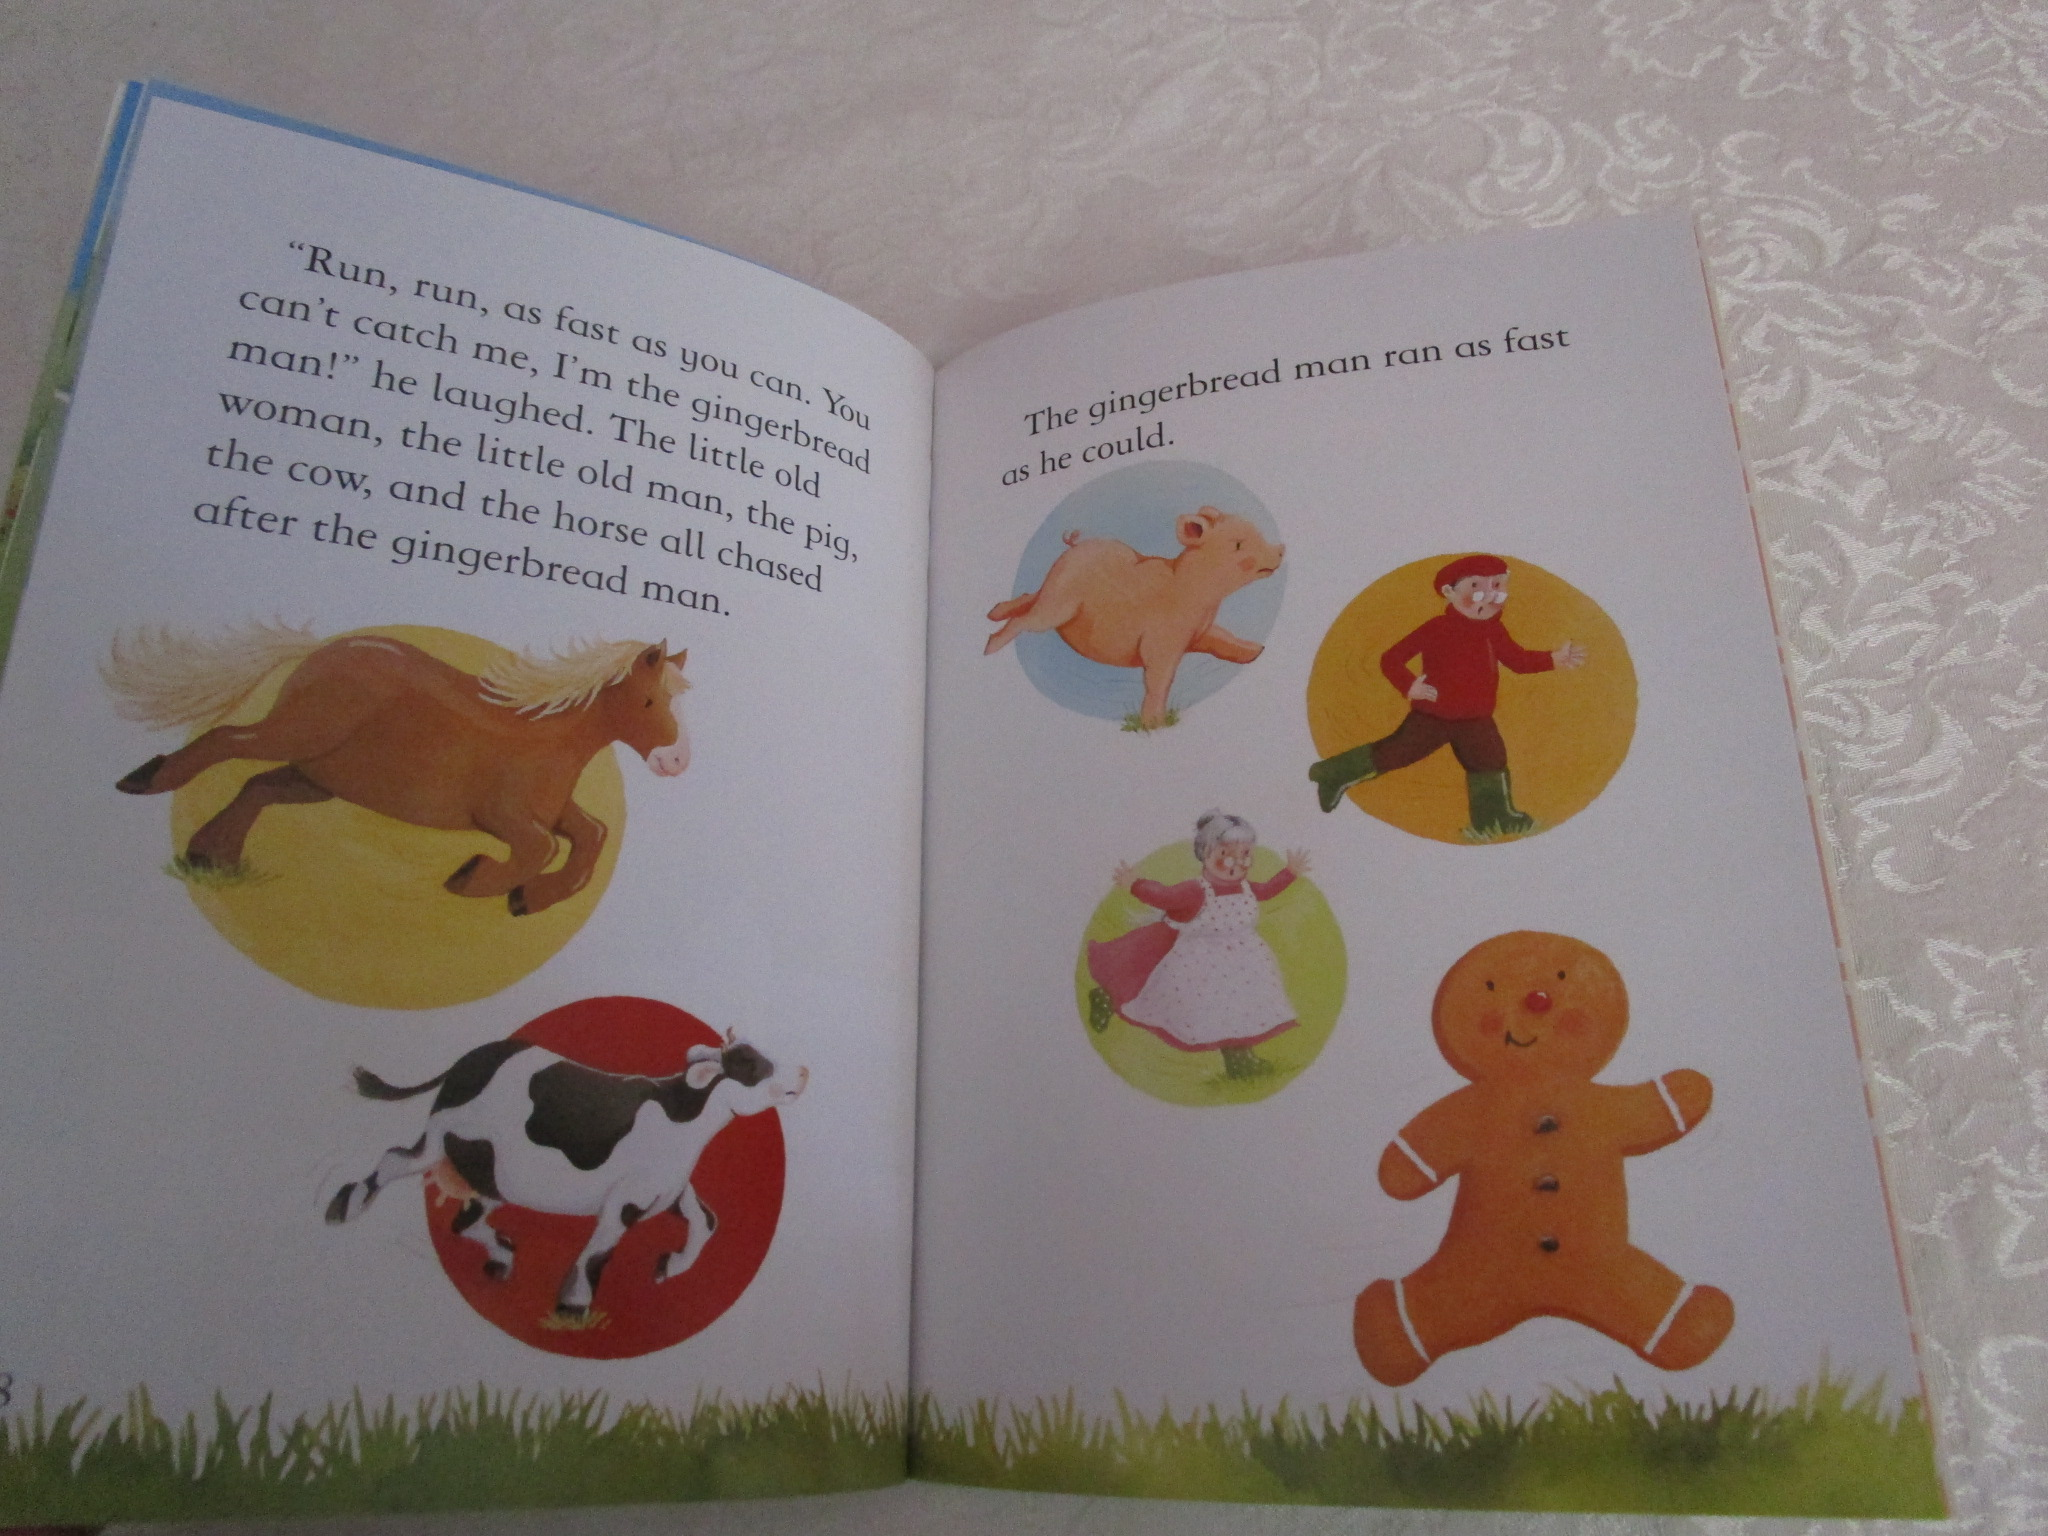 Image 3 of The Gingerbread Man Gail Yerrill Brand New SC Reader Size